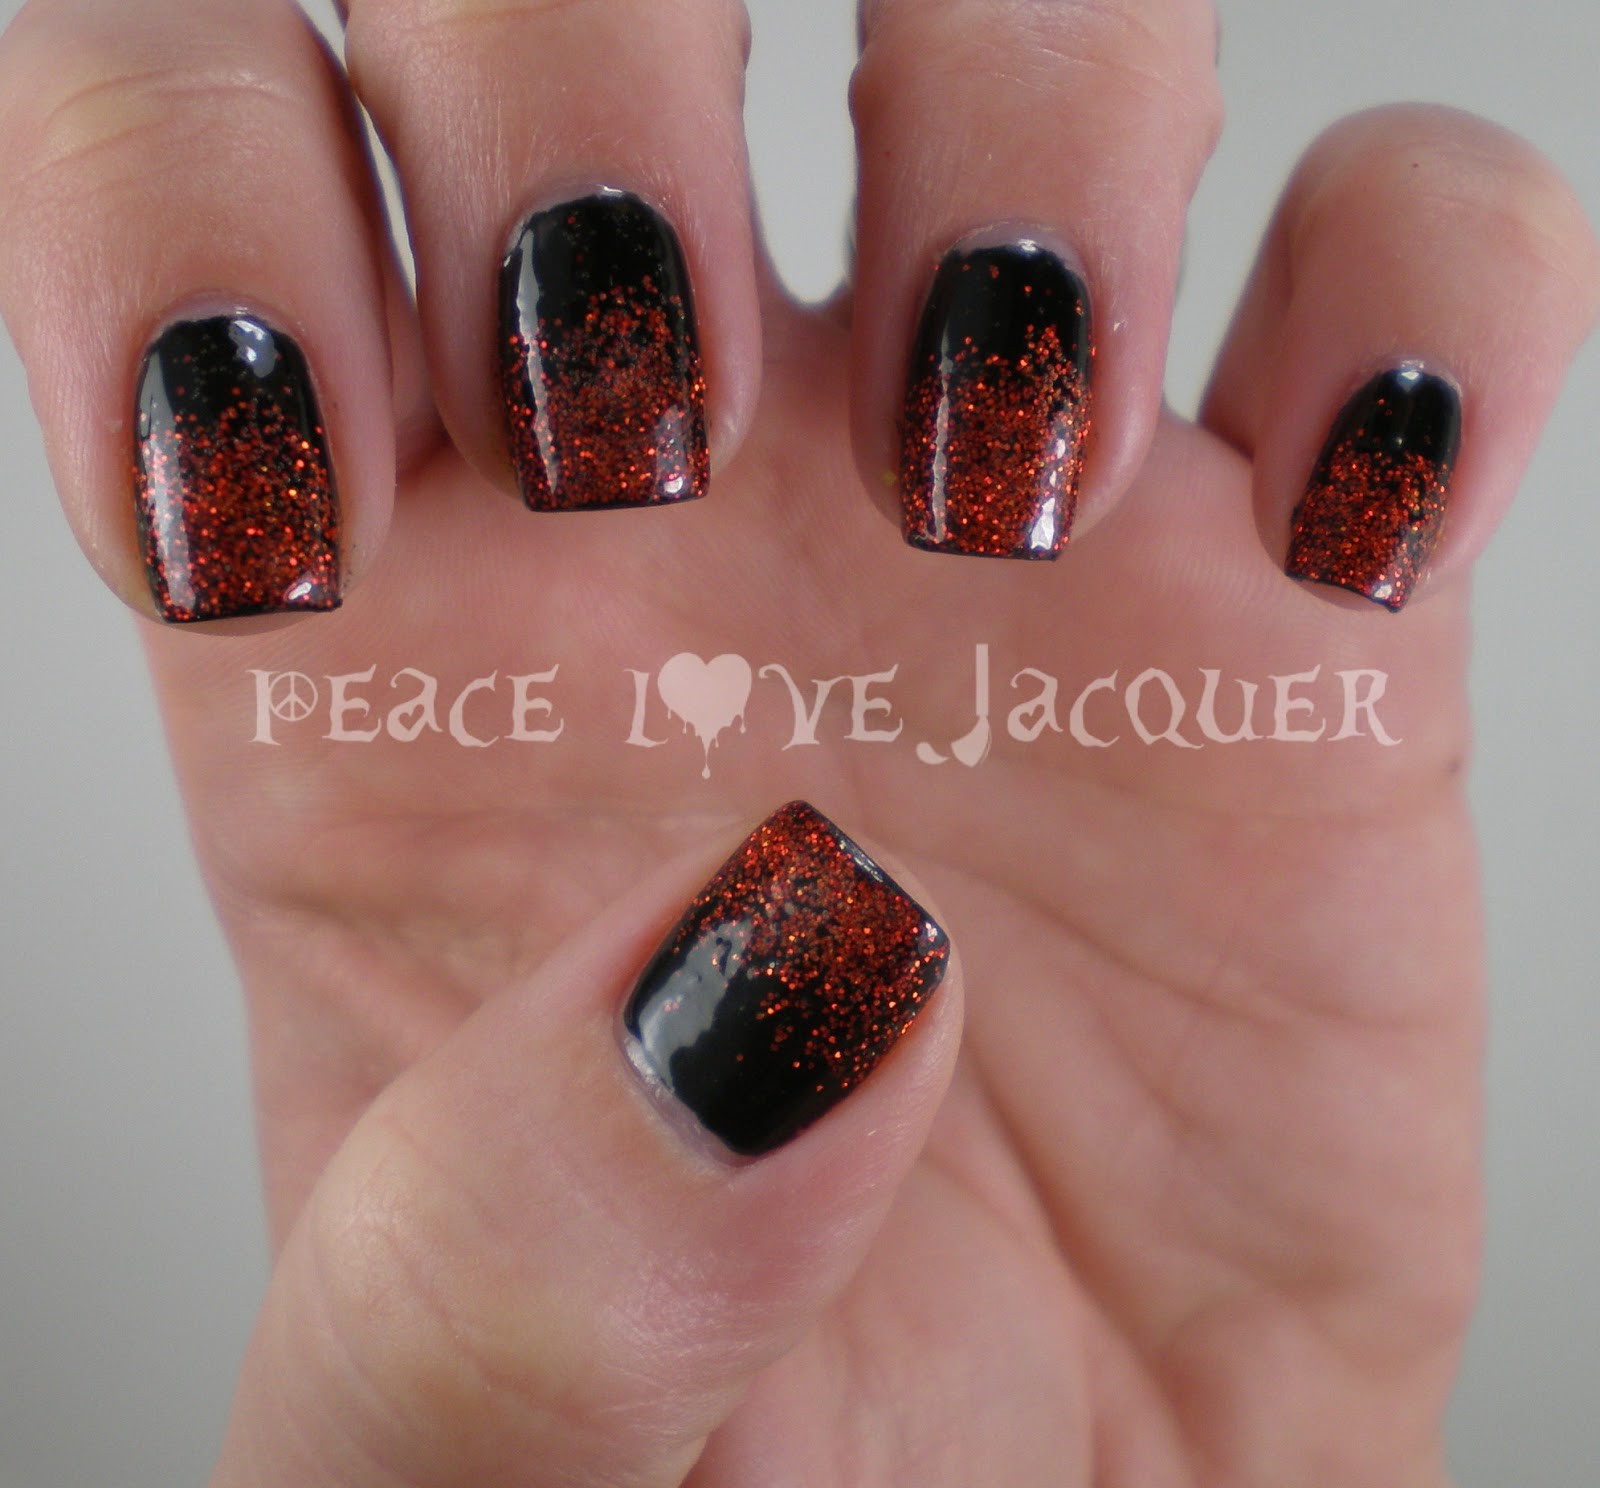 Gradient Nail Art: Peace Love Lacquer: Red Glitter Gradient Nail Art